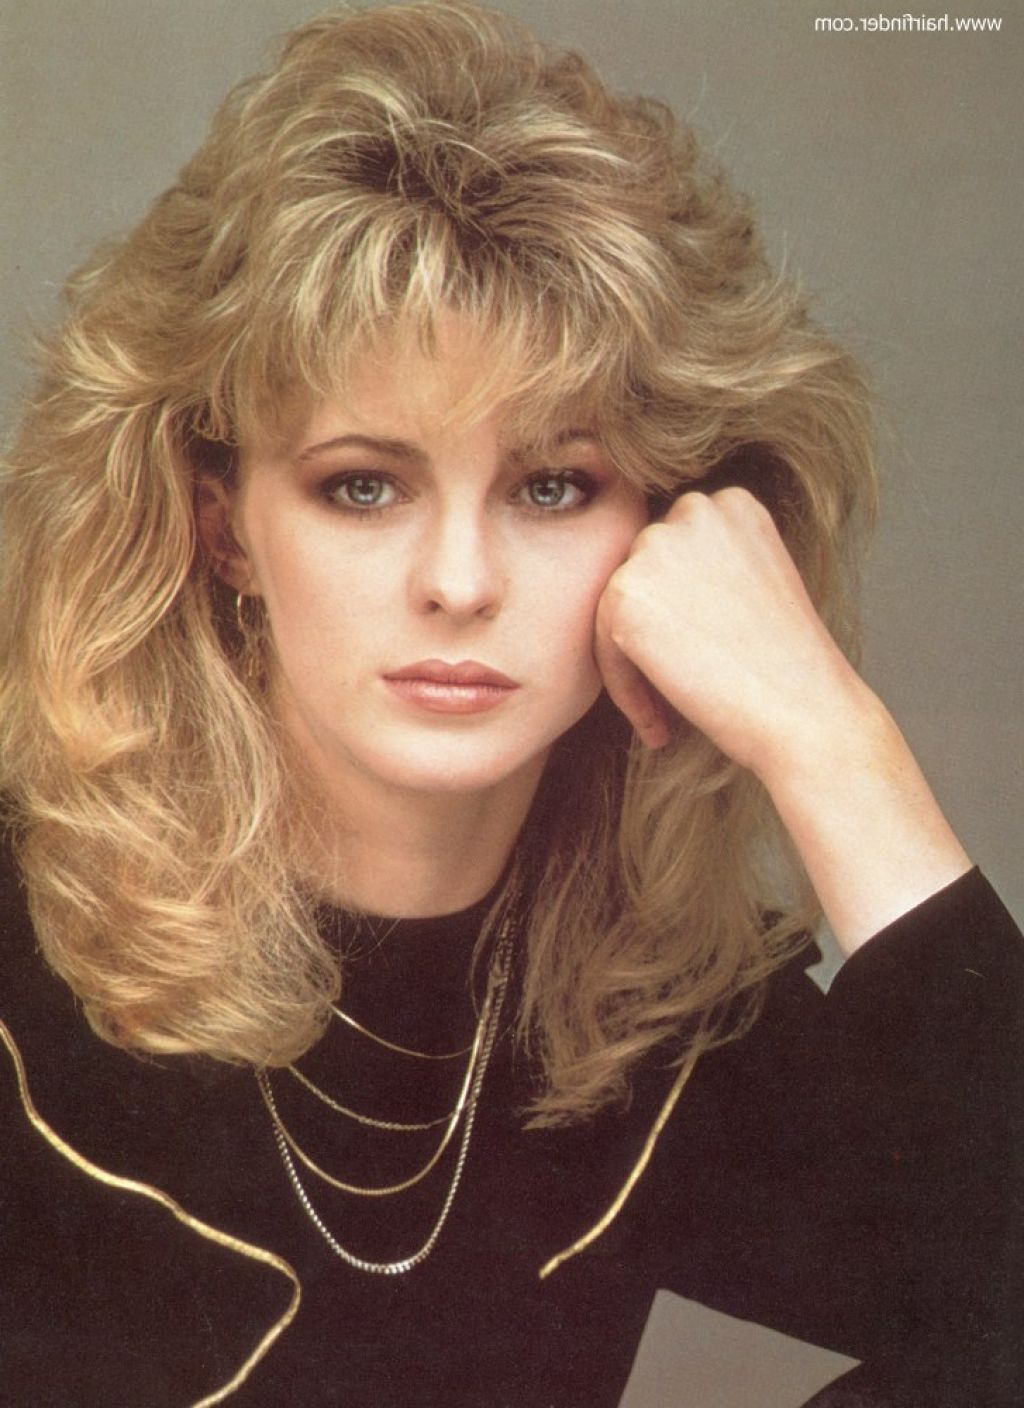 gotta love the 80s hairstyles!!! | hairstyles | pinterest | 80s